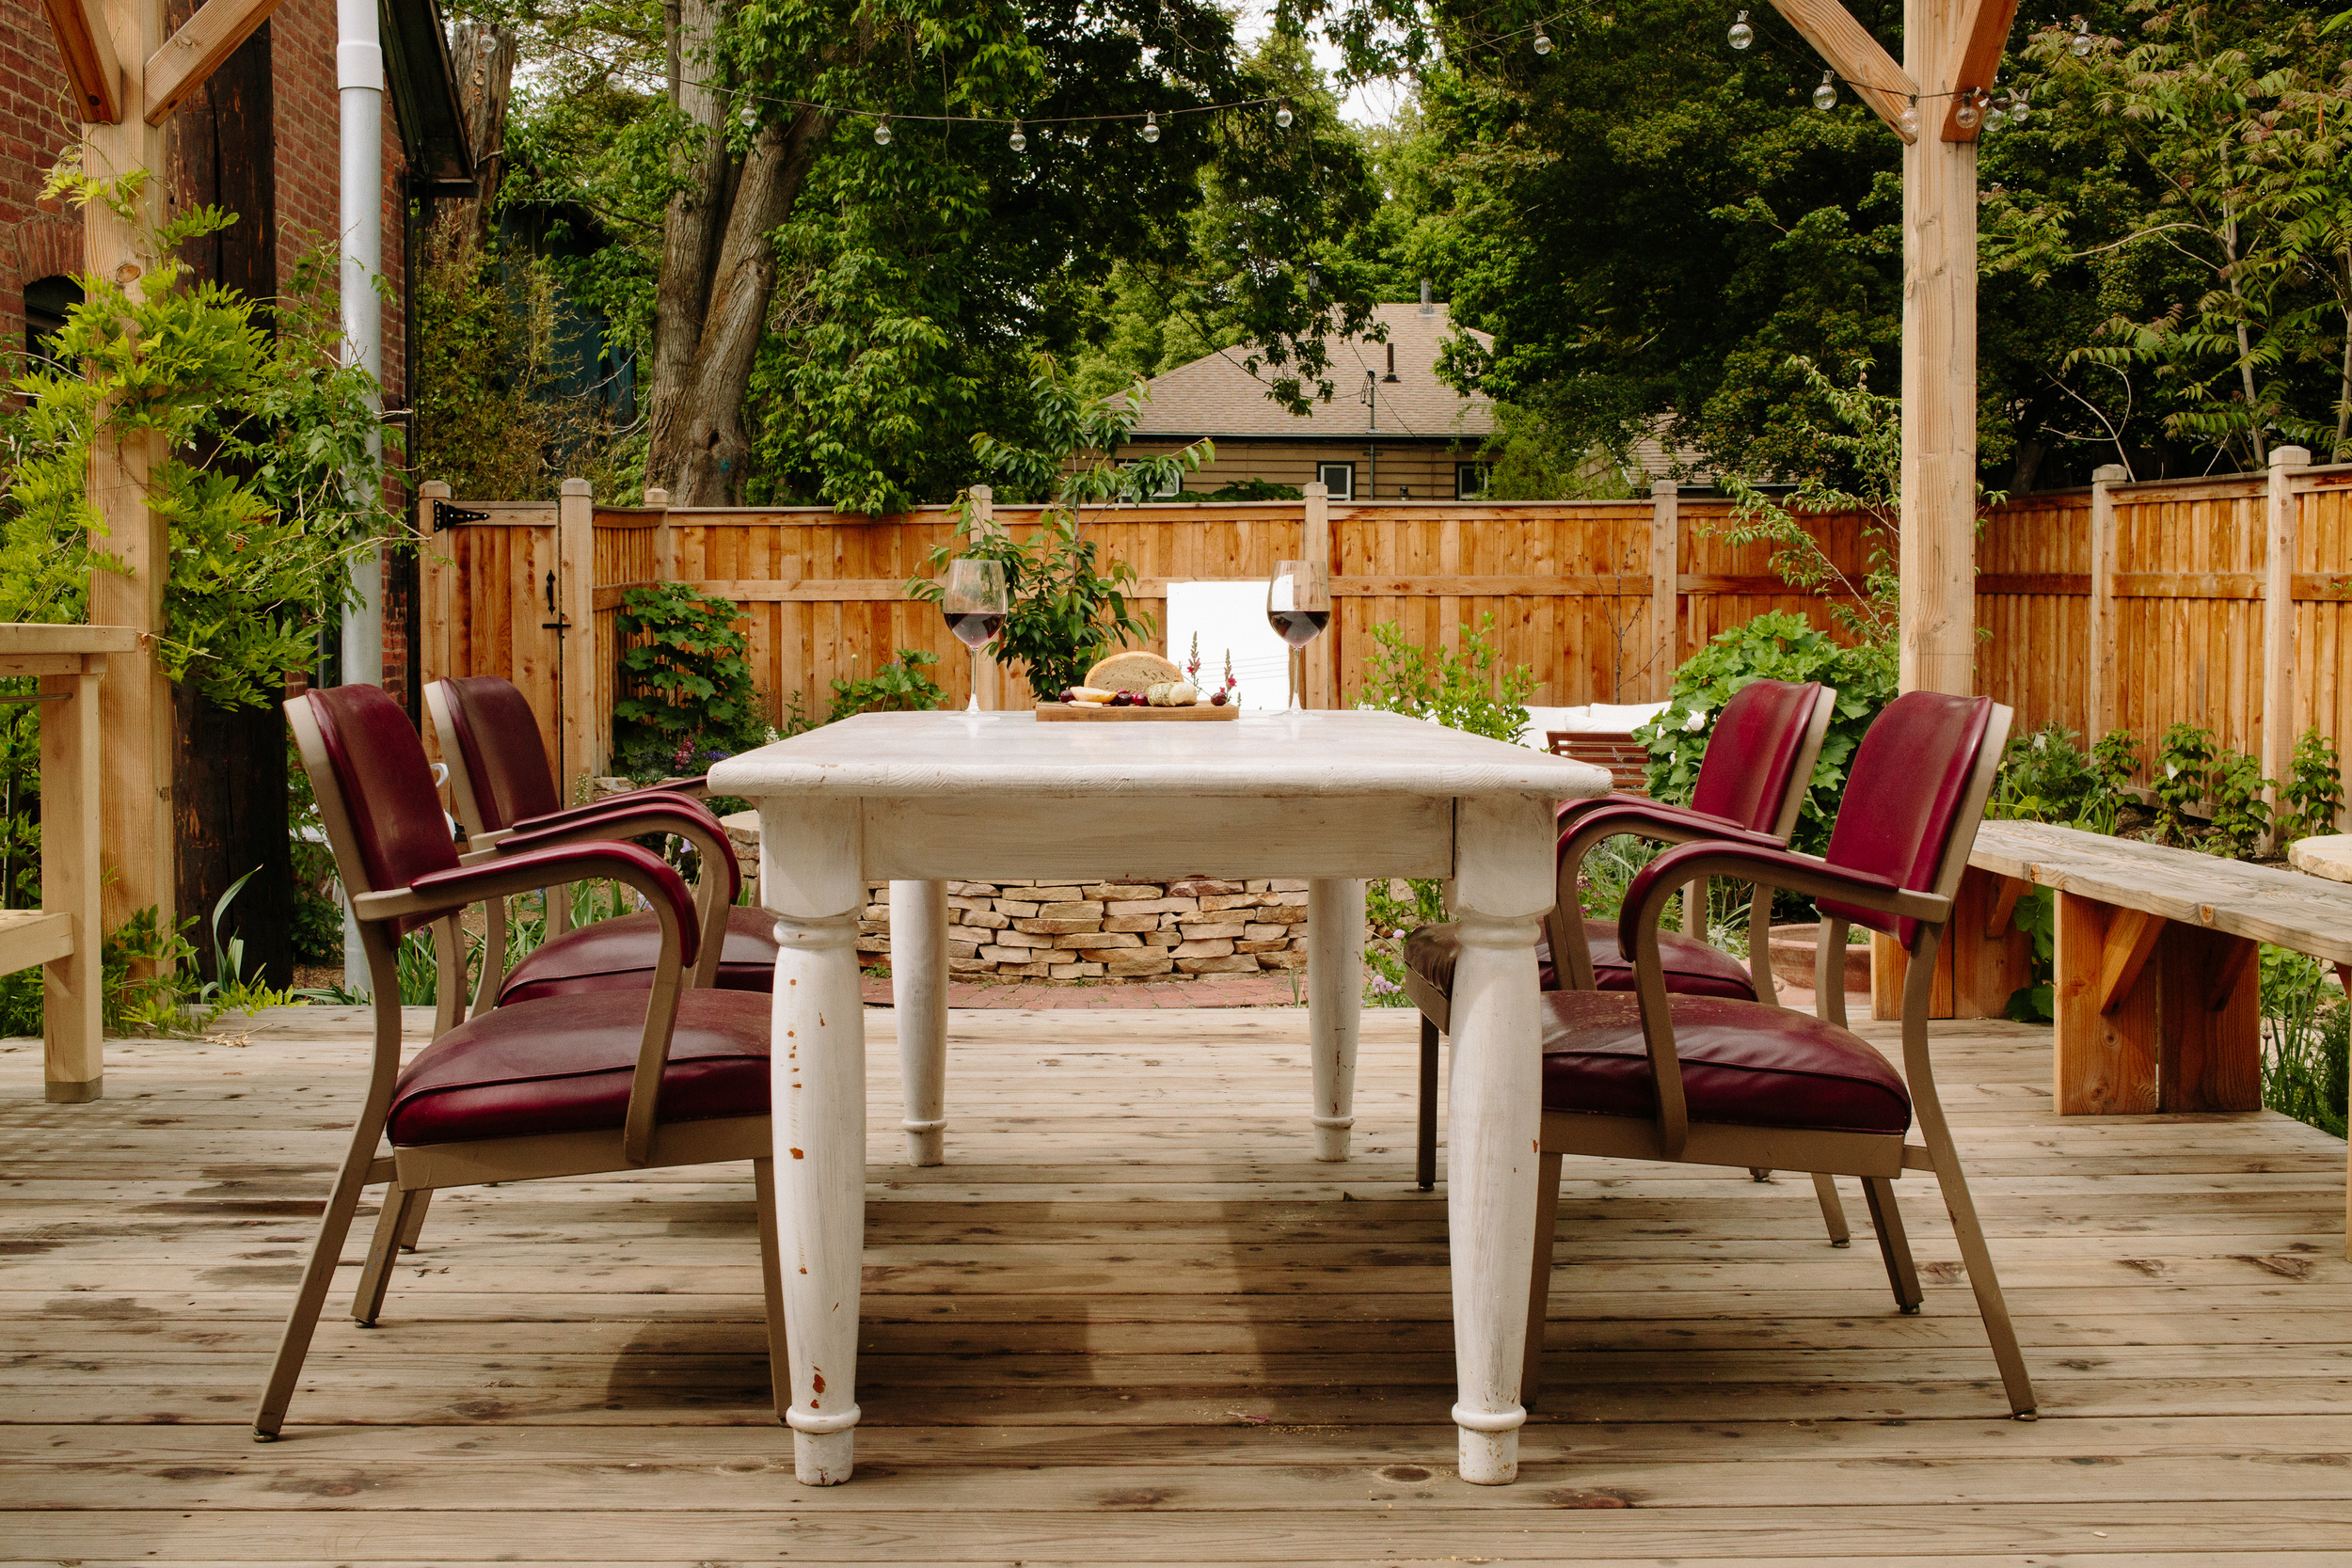 Summer evenings in SLC are warm, perfect for dining outdoors.